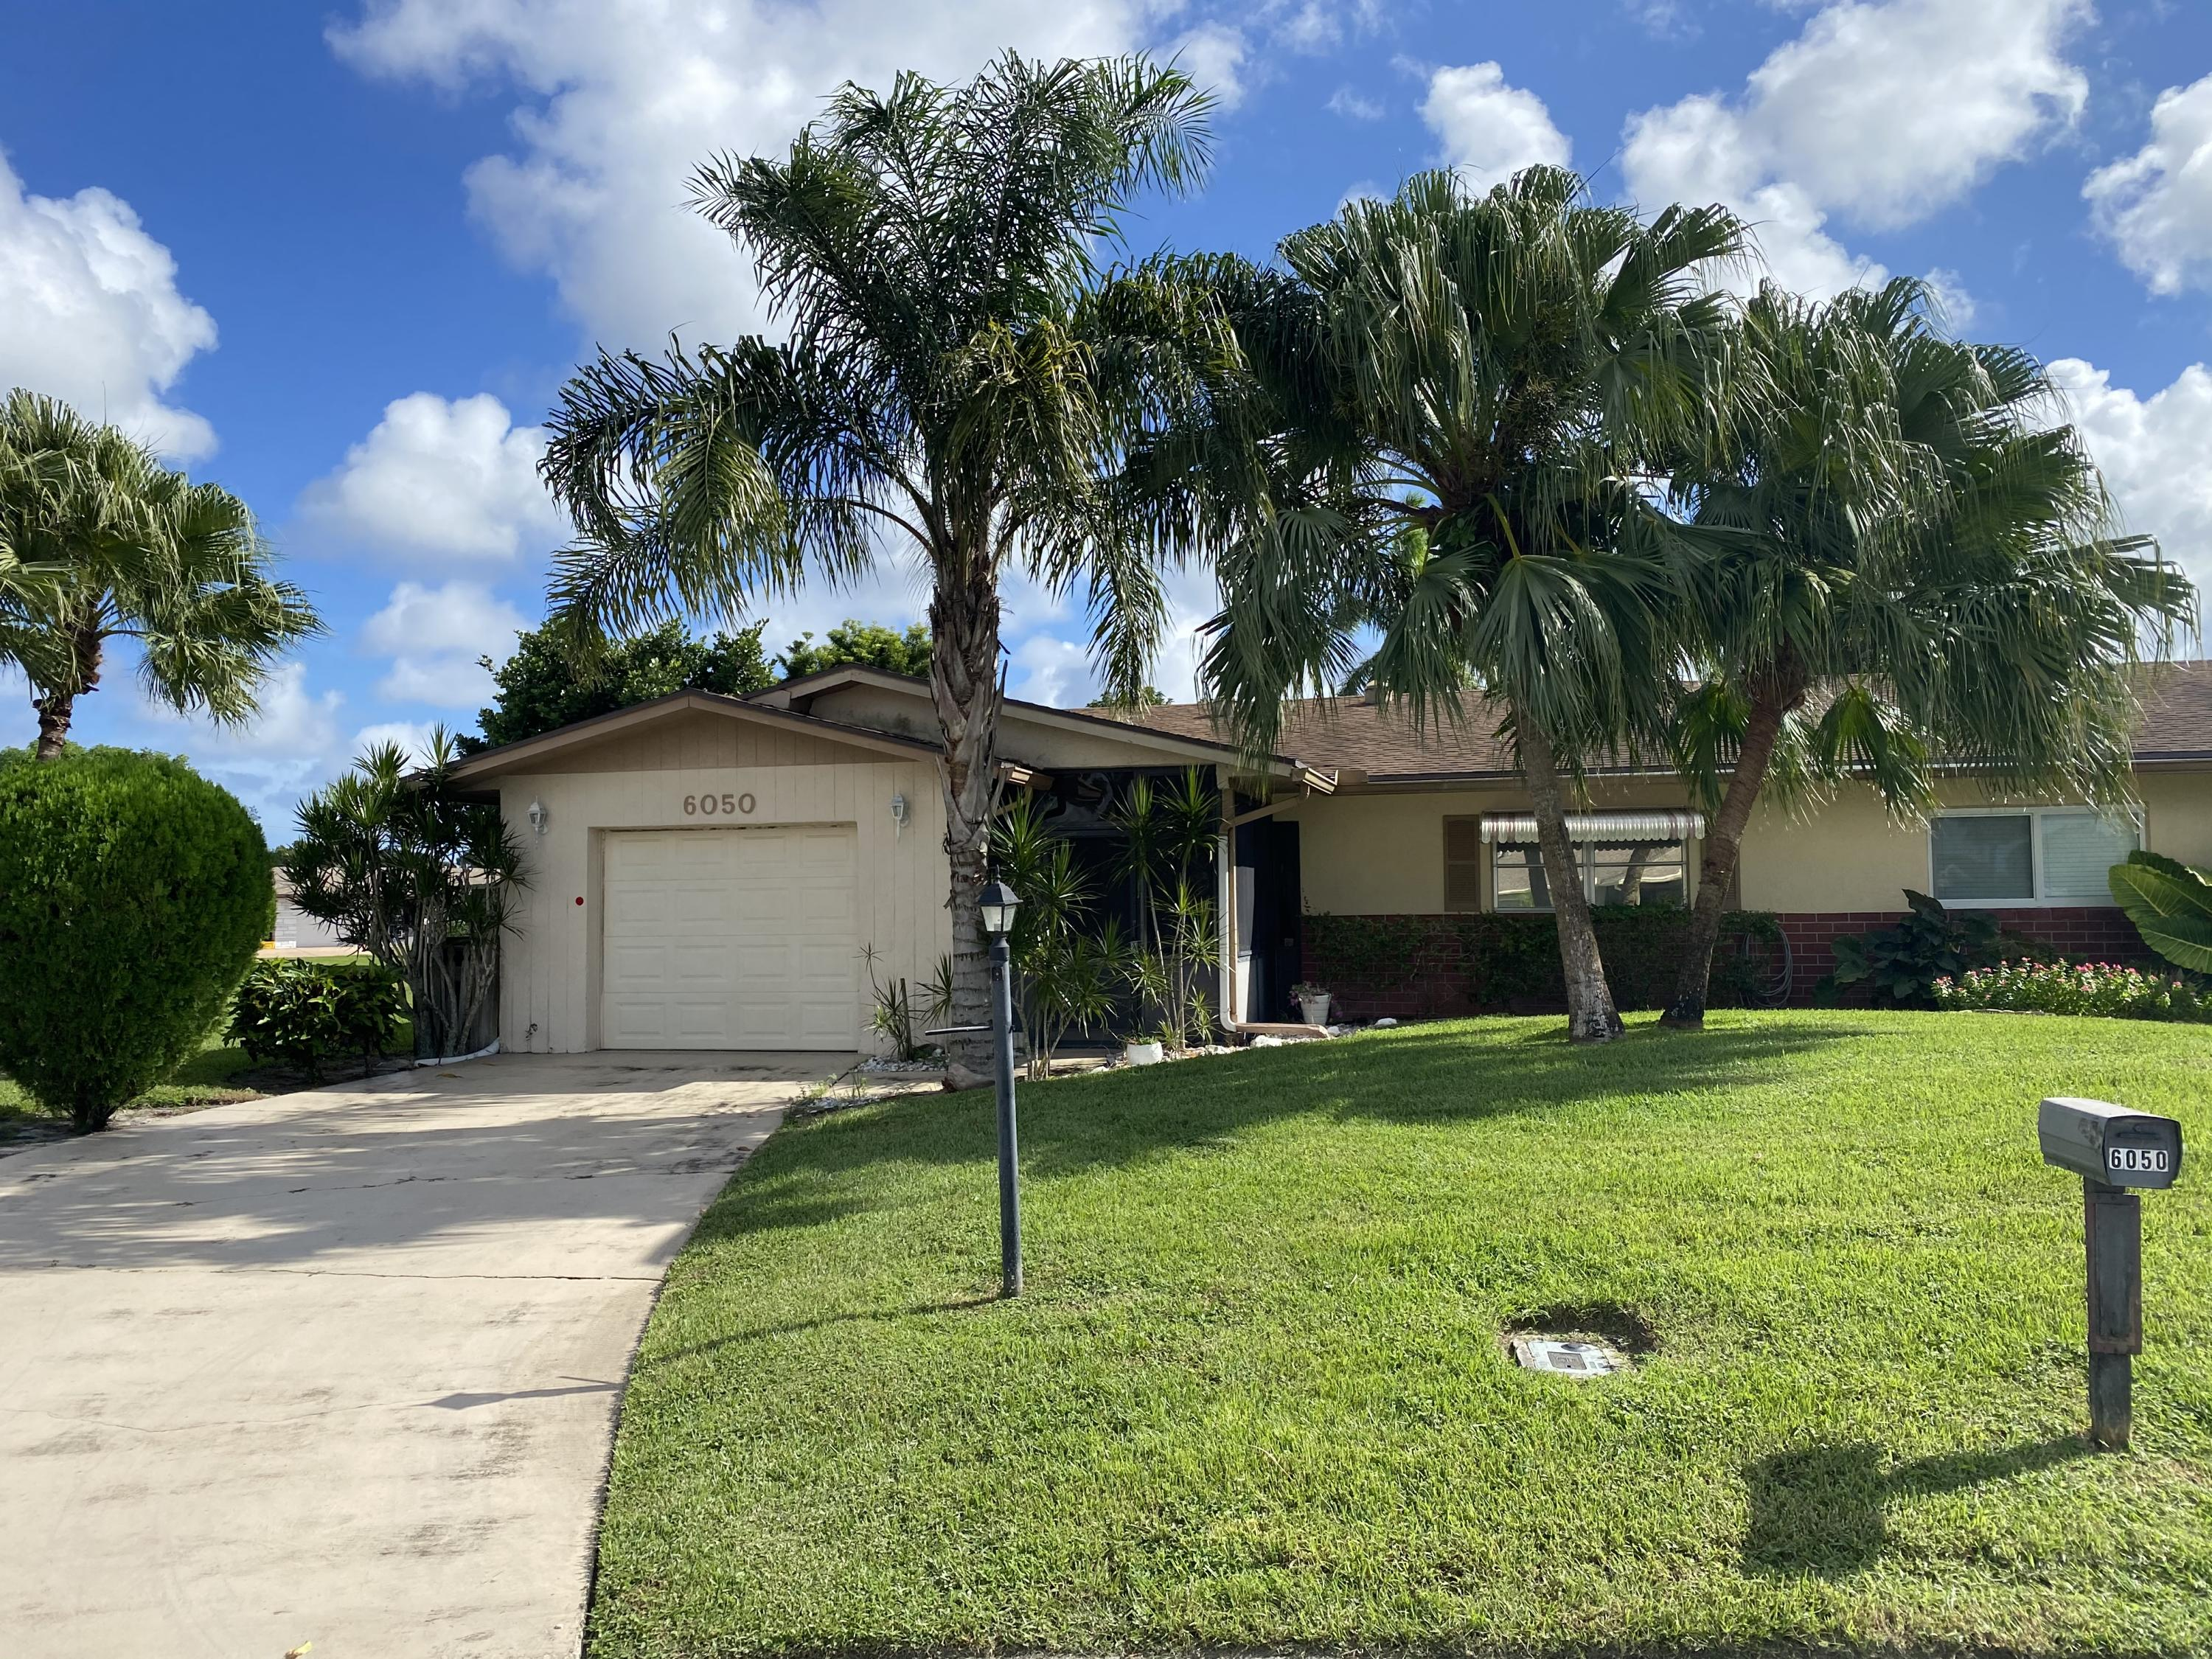 Details for 6050 Overland Place, Delray Beach, FL 33484